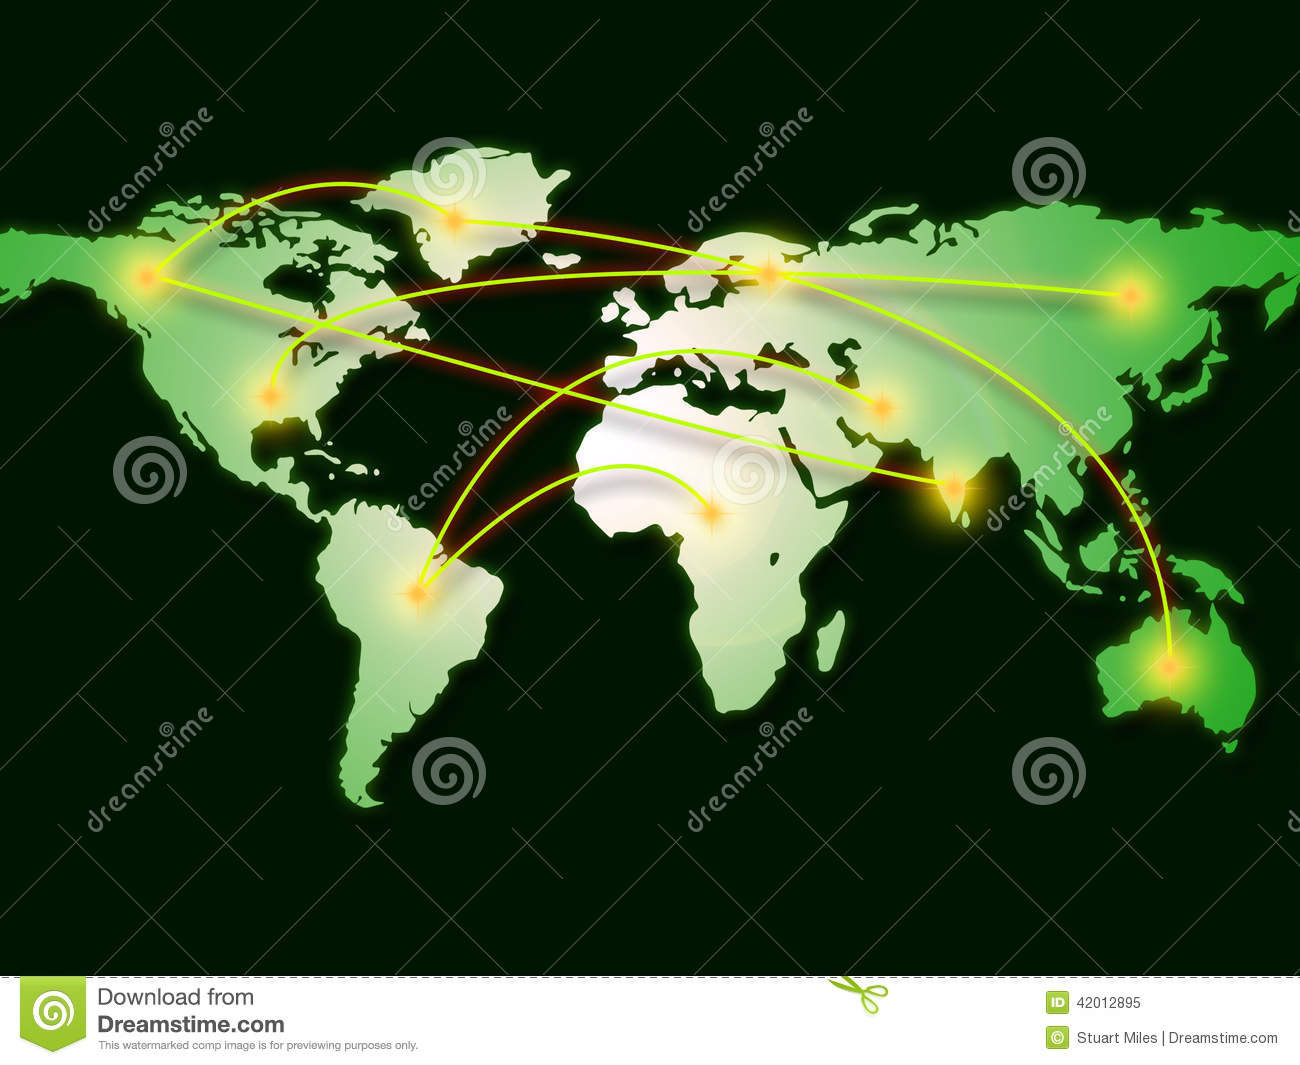 World map represents computer network and cartography stock royalty free illustration download world map represents computer network and cartography stock illustration gumiabroncs Gallery